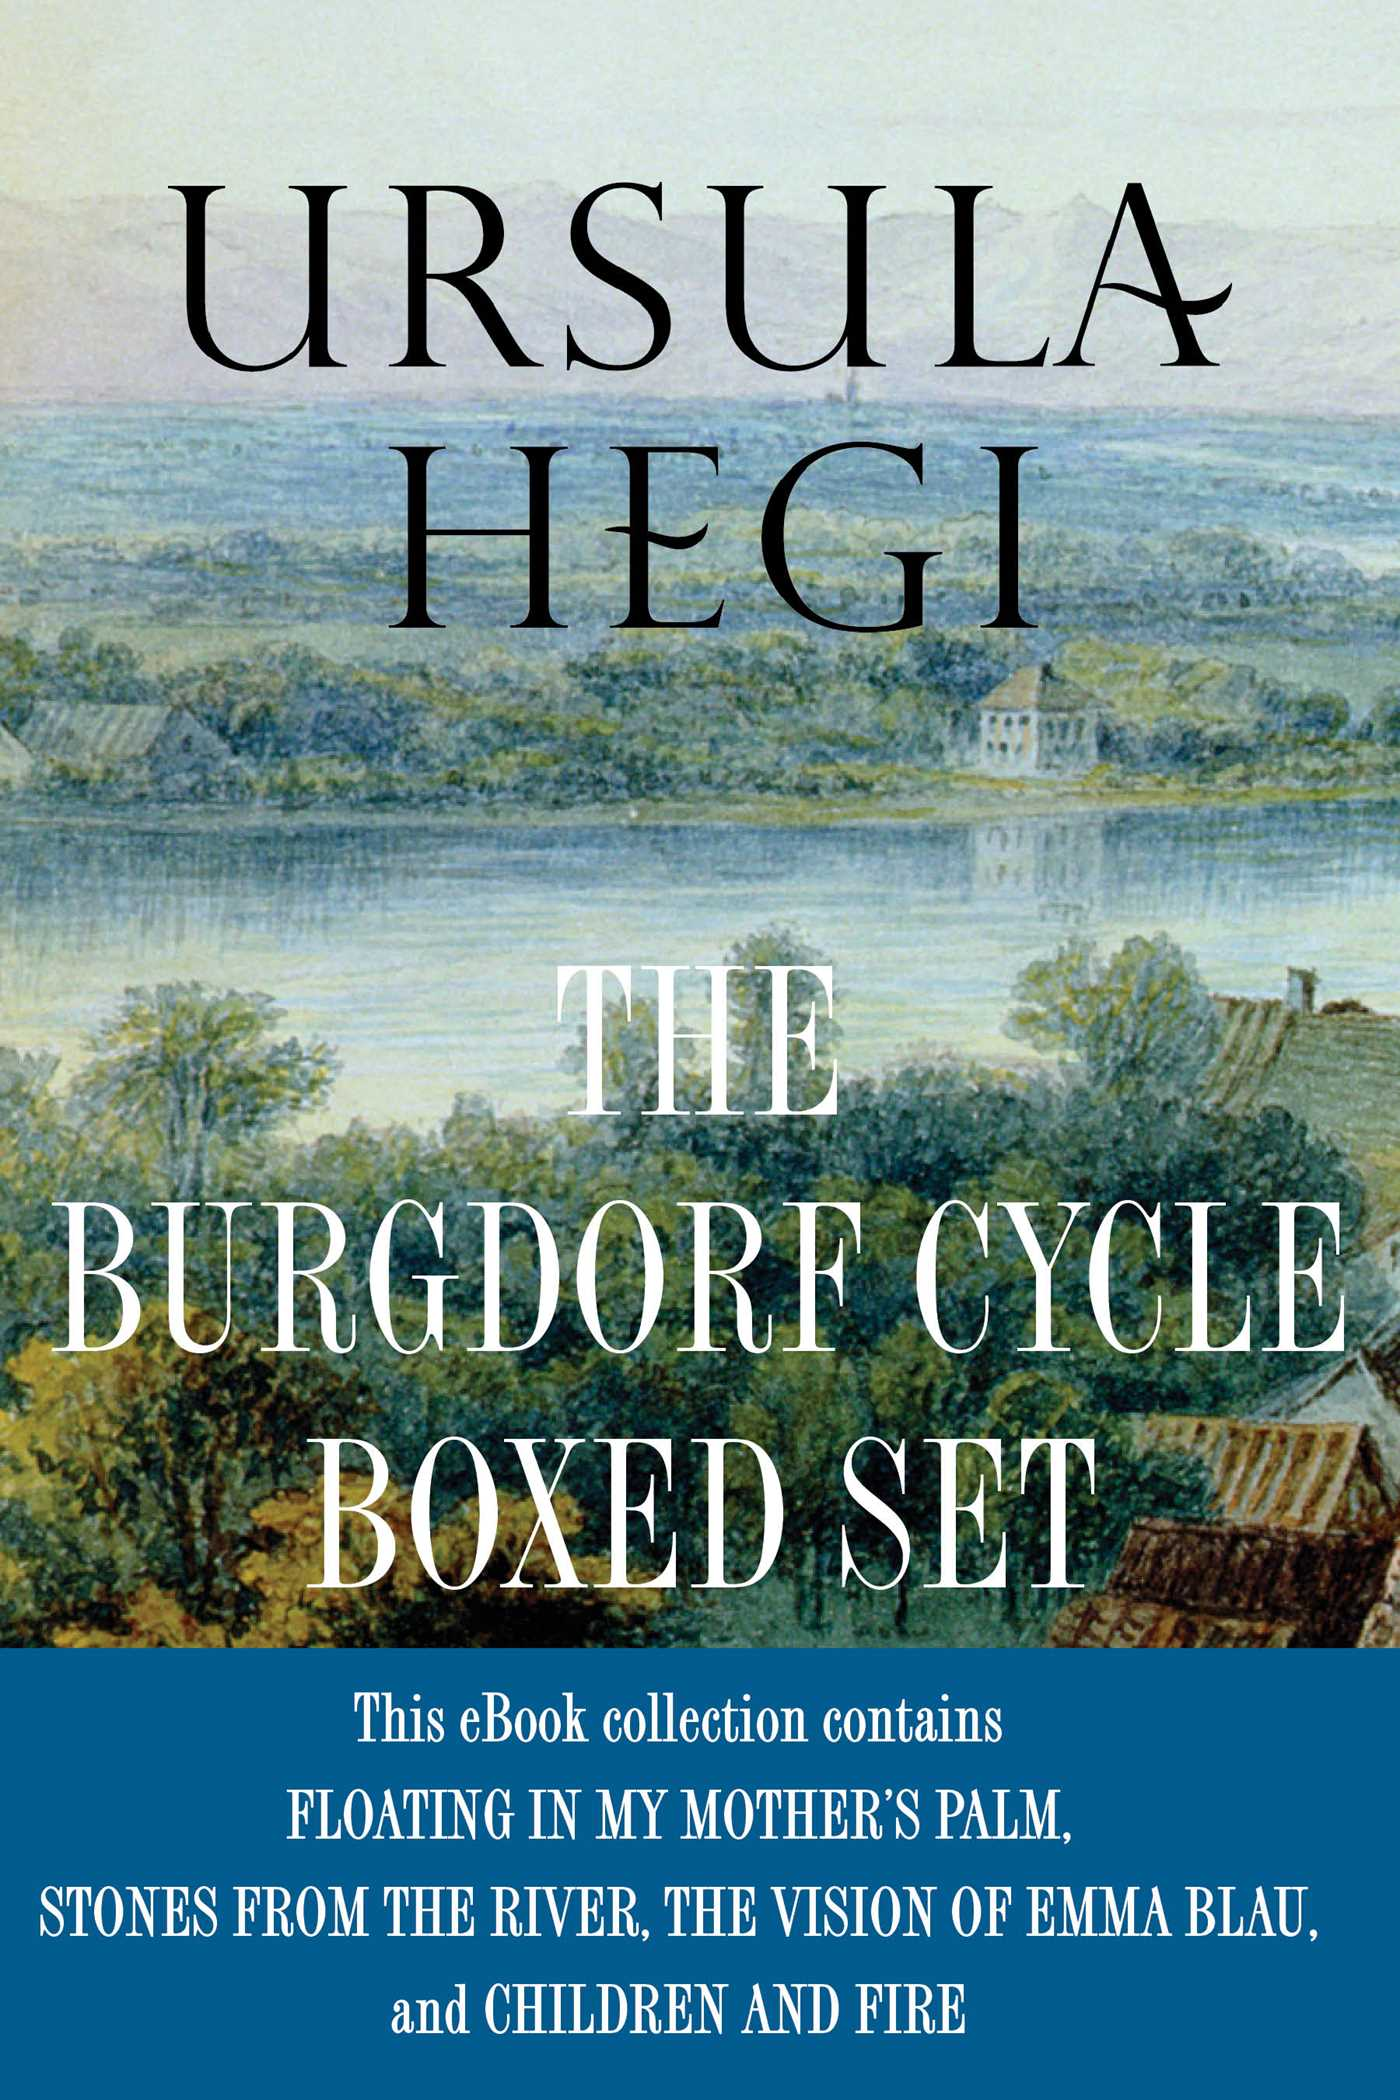 Ursula-hegi-the-burgdorf-cycle-boxed-set-9781451661590_hr